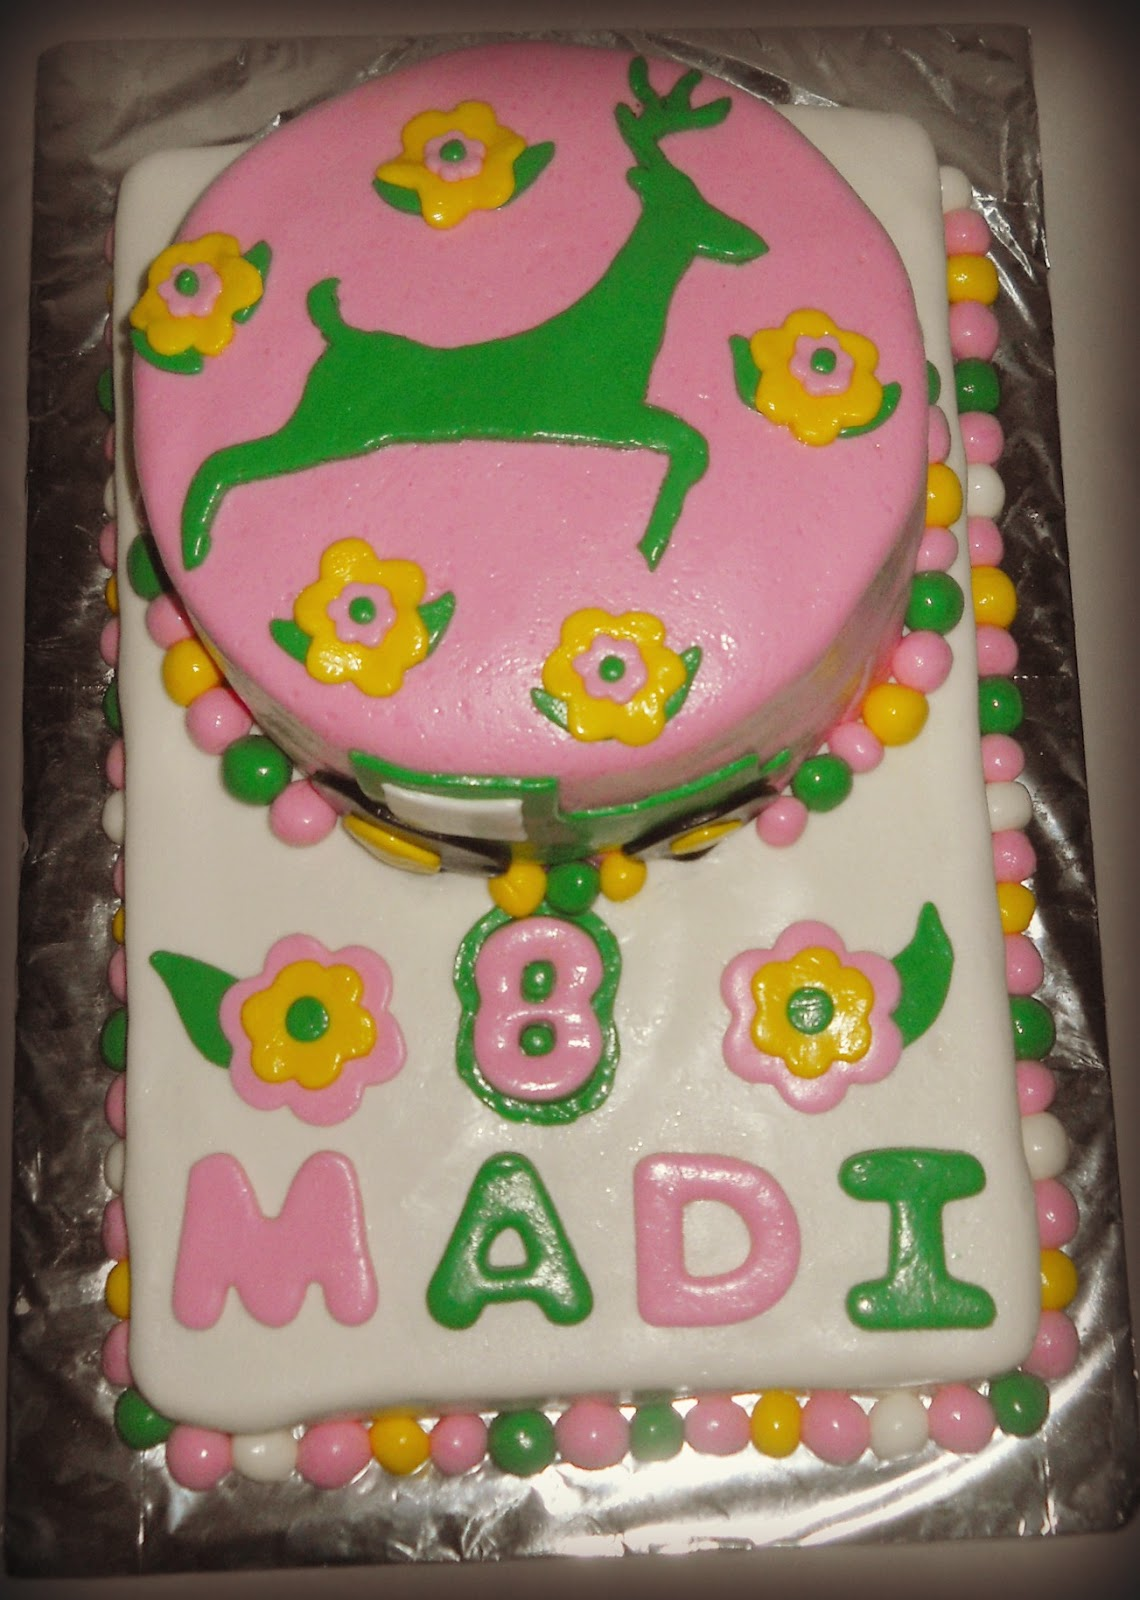 Mandys Cakes John Deere Pink And Green Birthday Cake